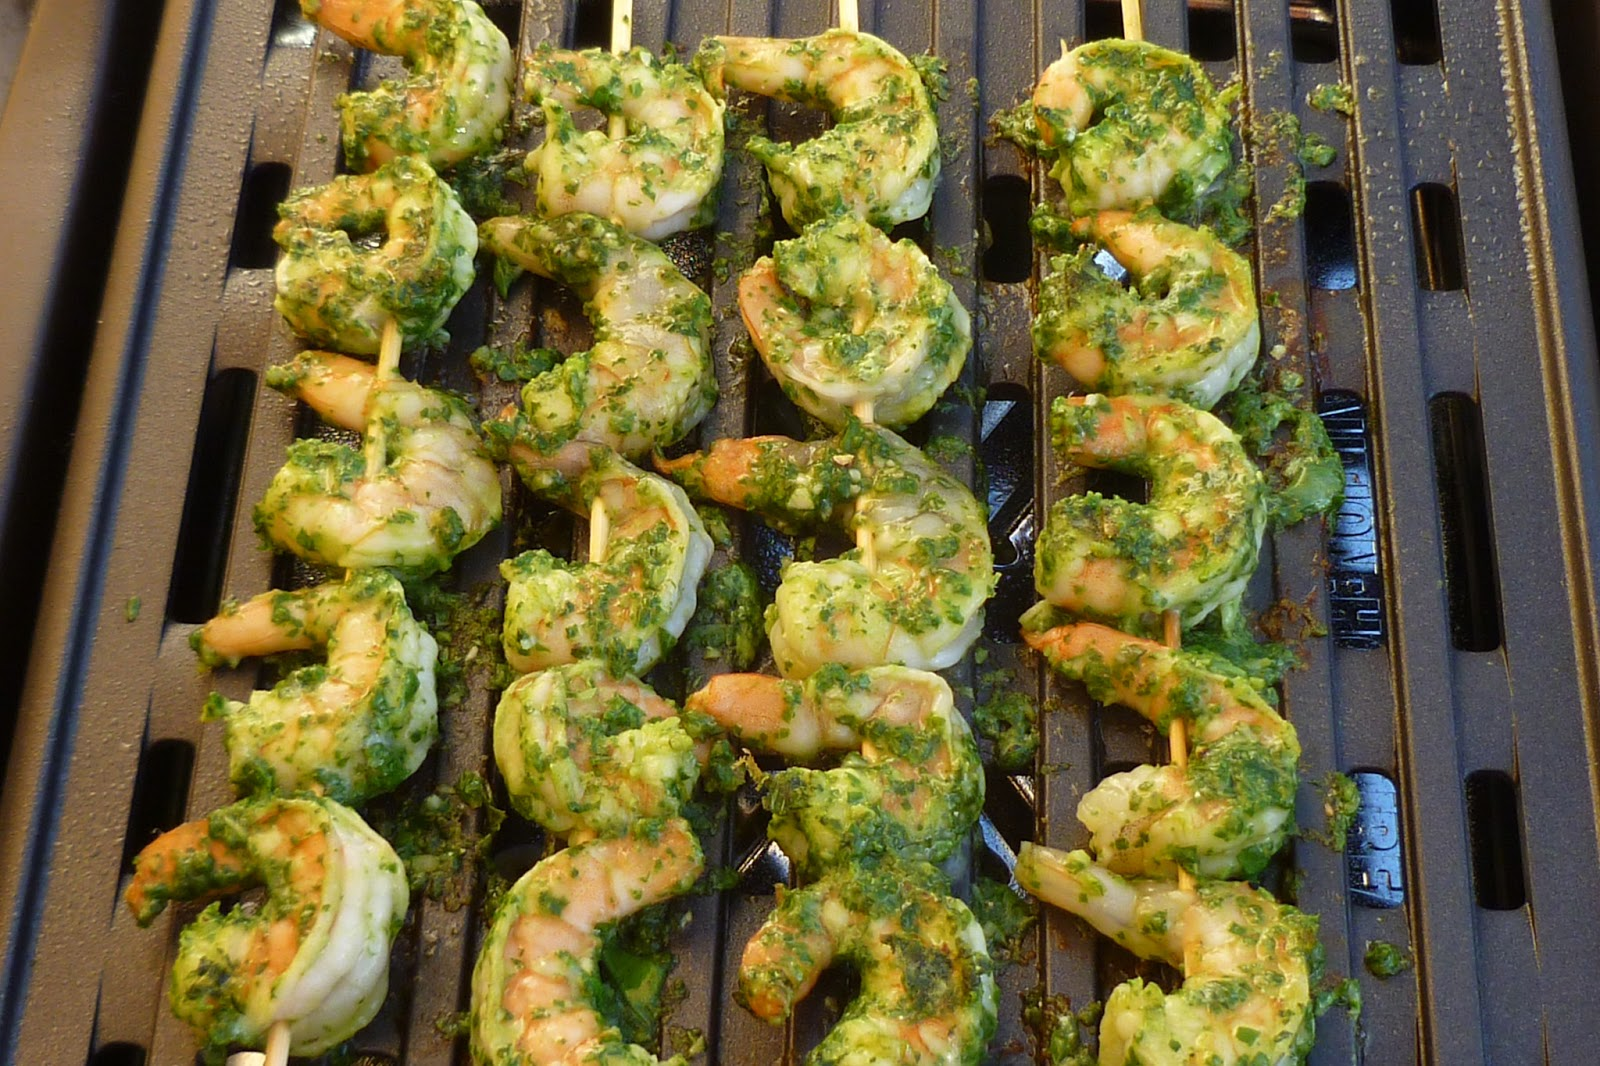 The Pastry Chef's Baking: Grilled Pesto Shrimp Skewers